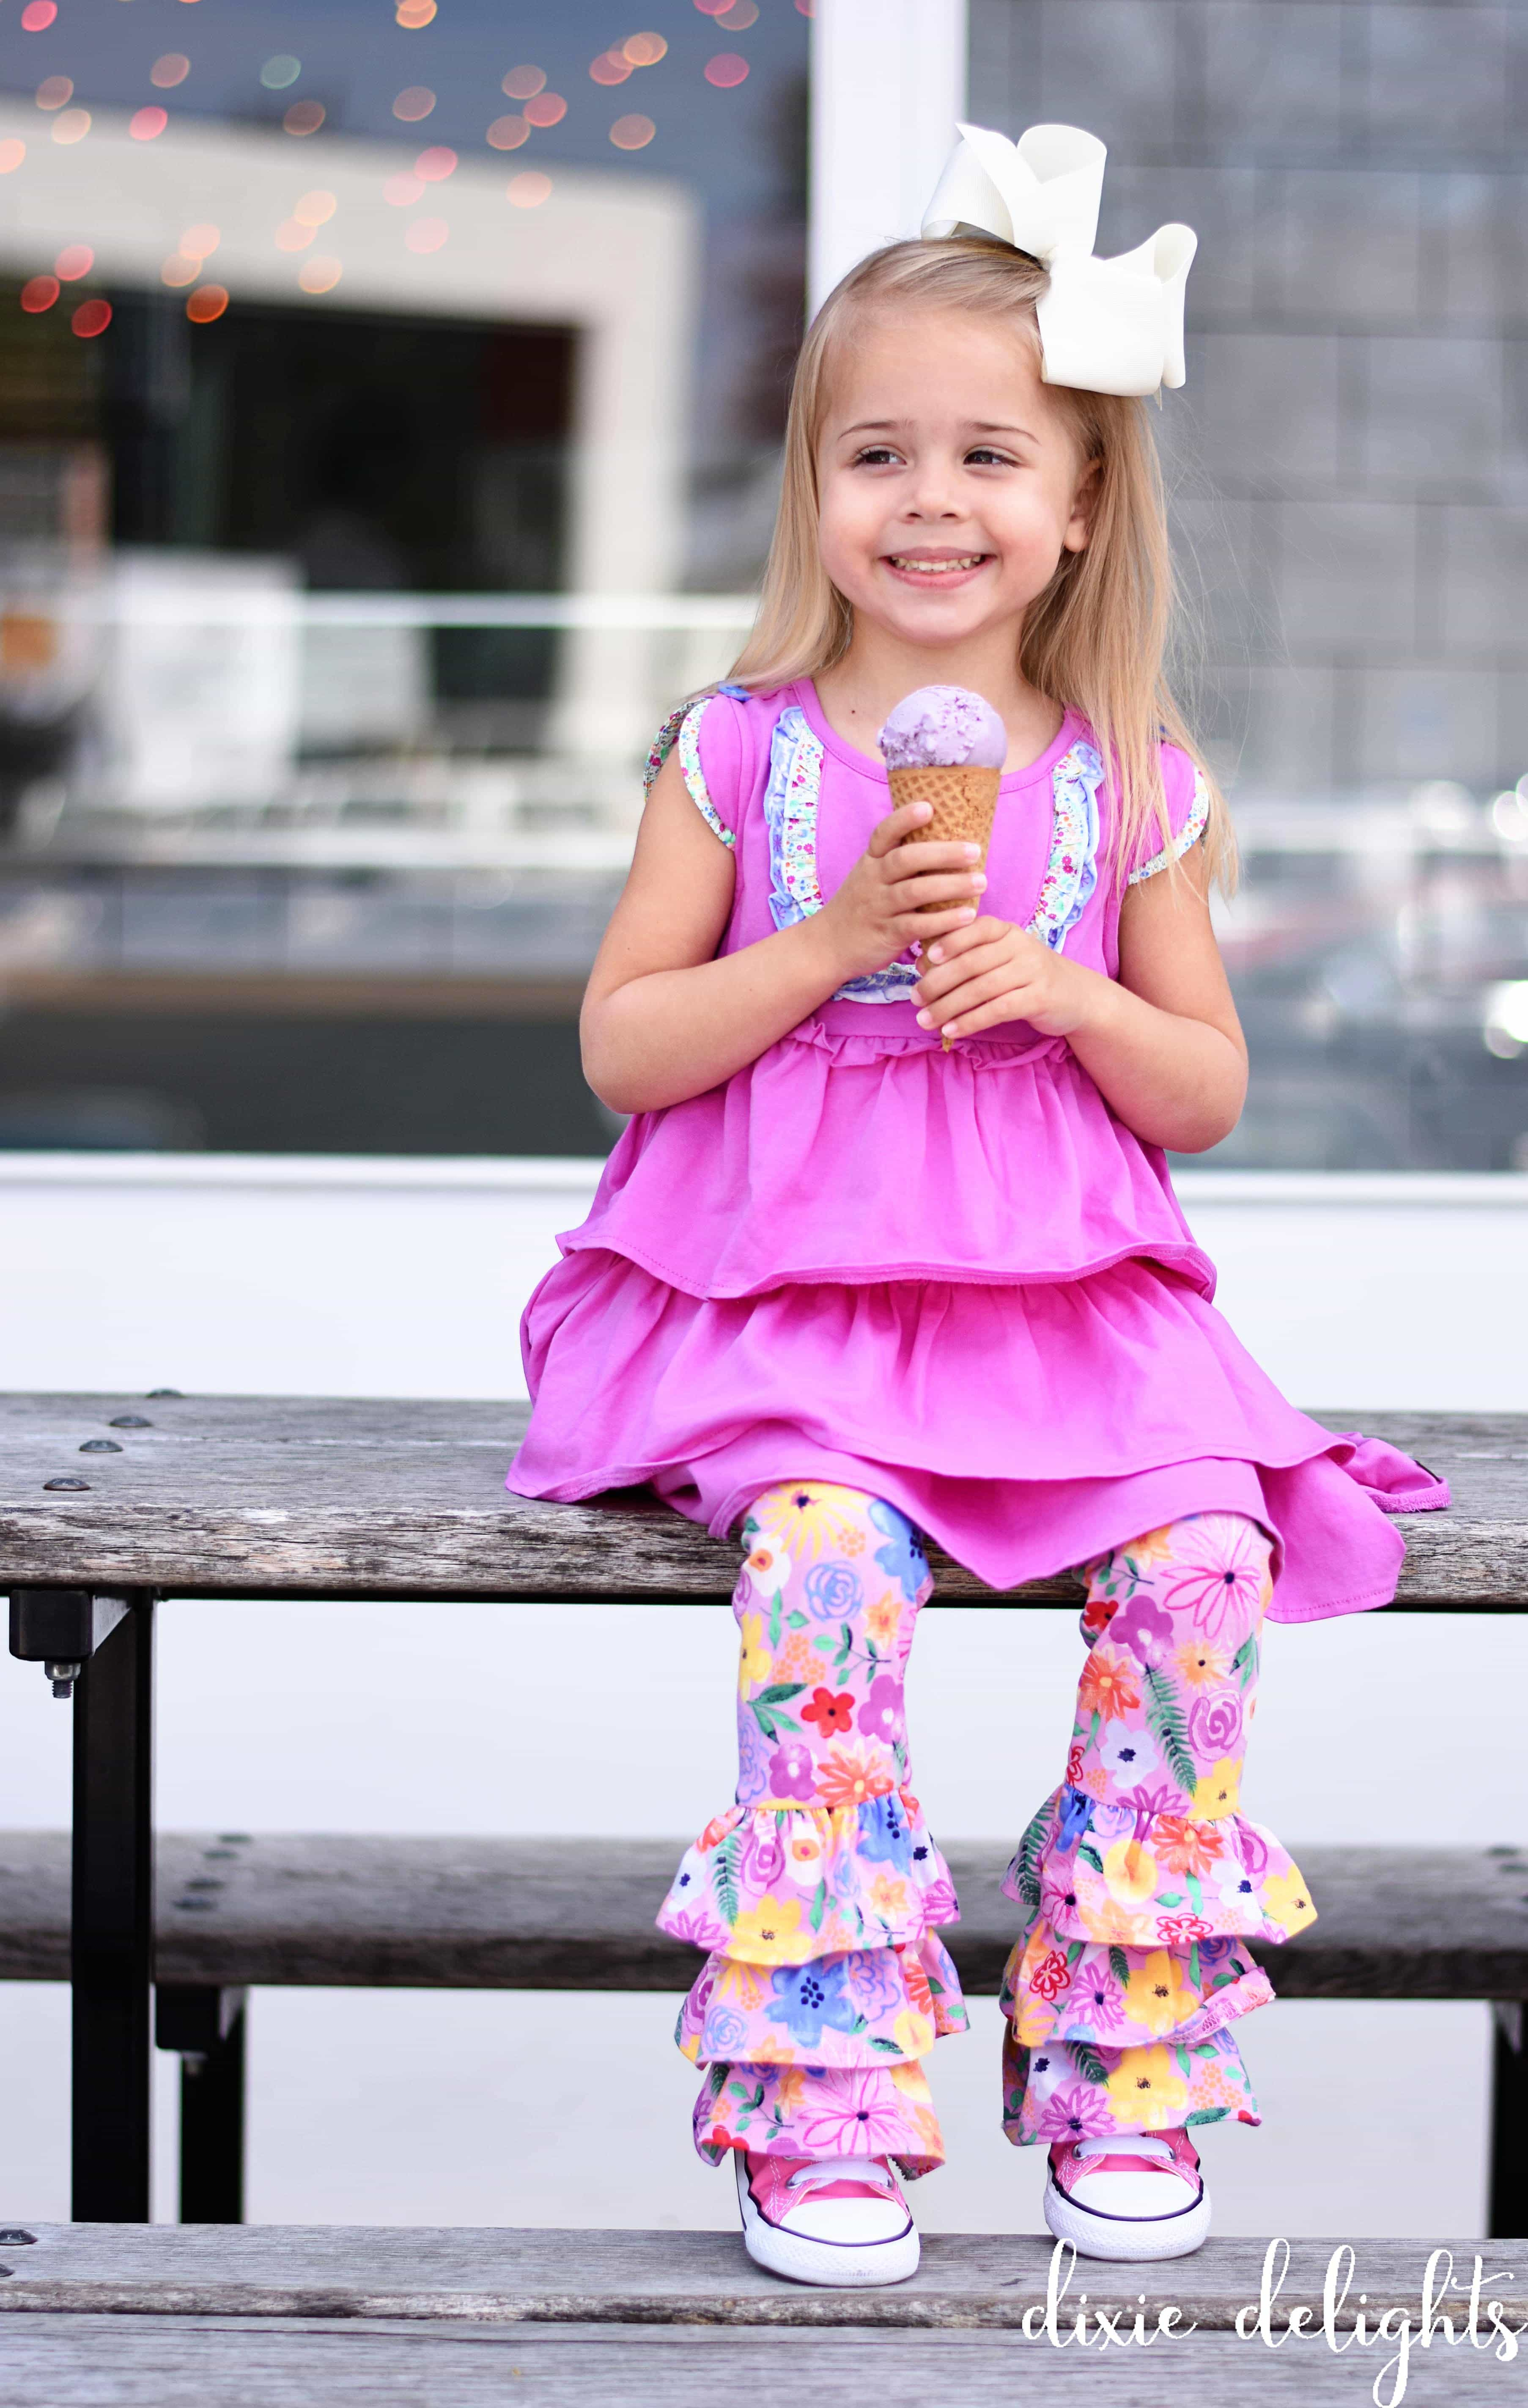 e486a12d7f95 CeeCee already has a few Matilda Jane pieces in her closet and Sister was  really excited for the opportunity to promote them. She asked me to pass  along a ...